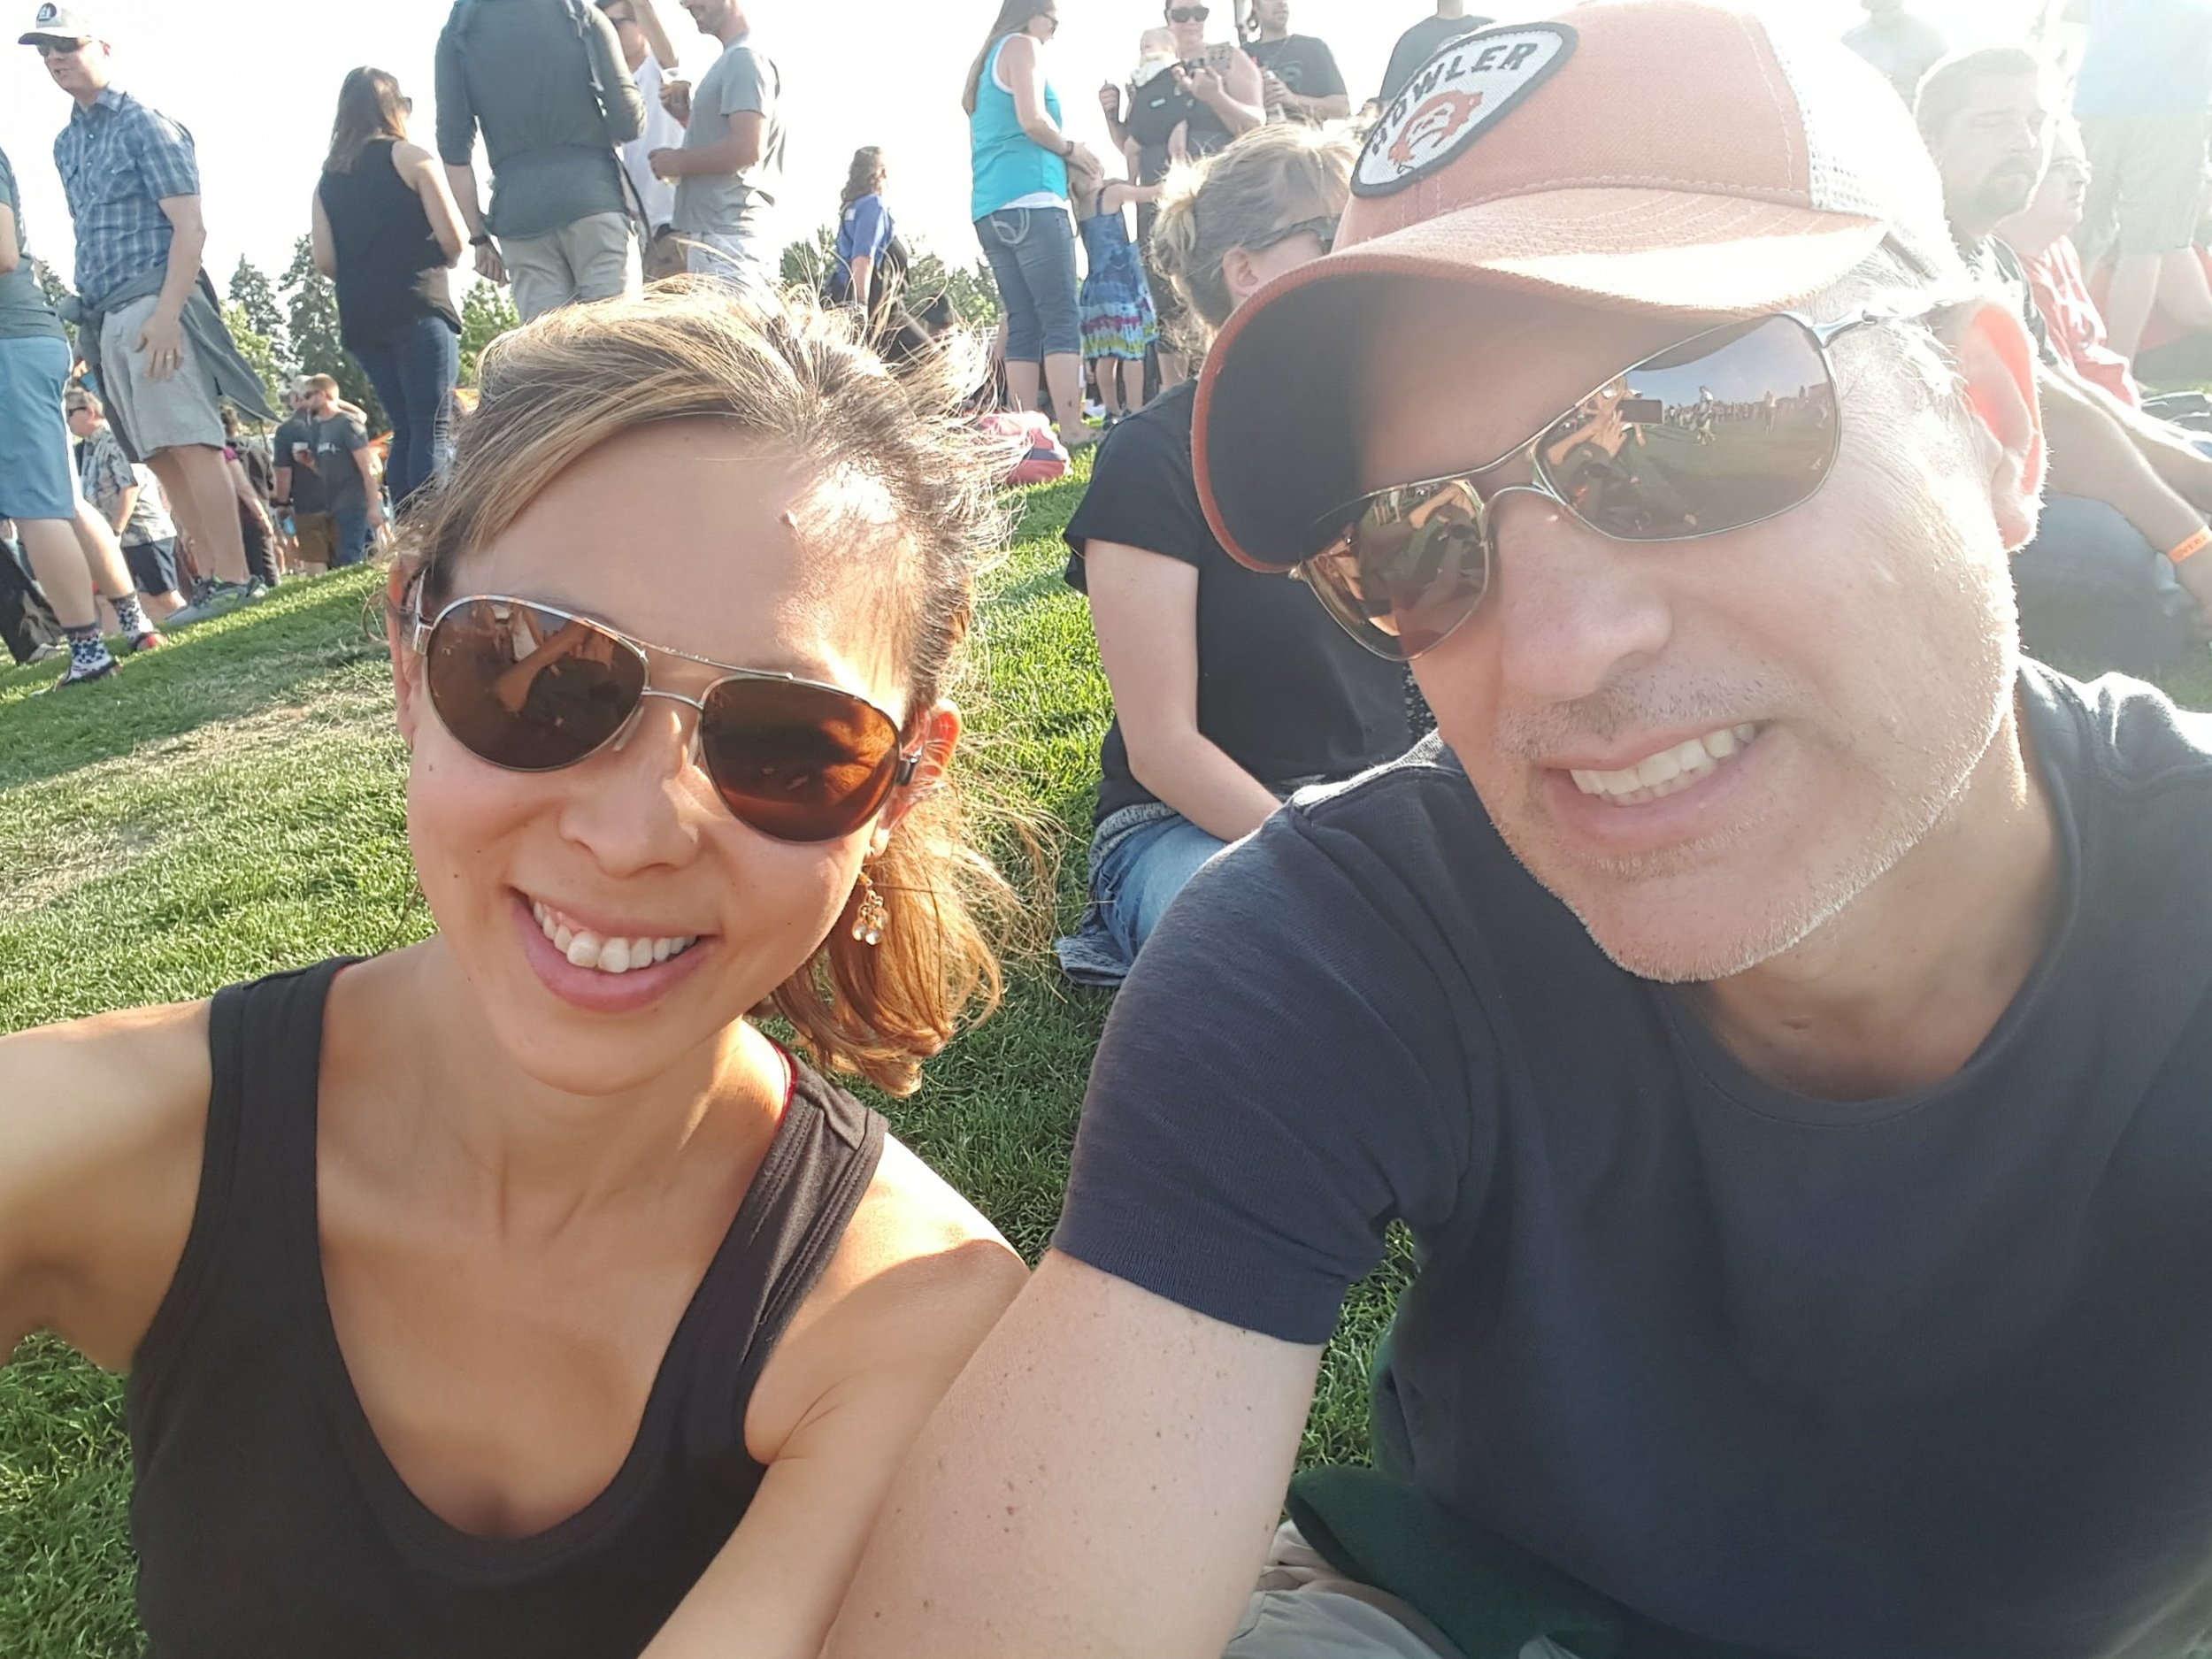 Jack Johnson concert - clowning around. It was a spectacular view of the sunset